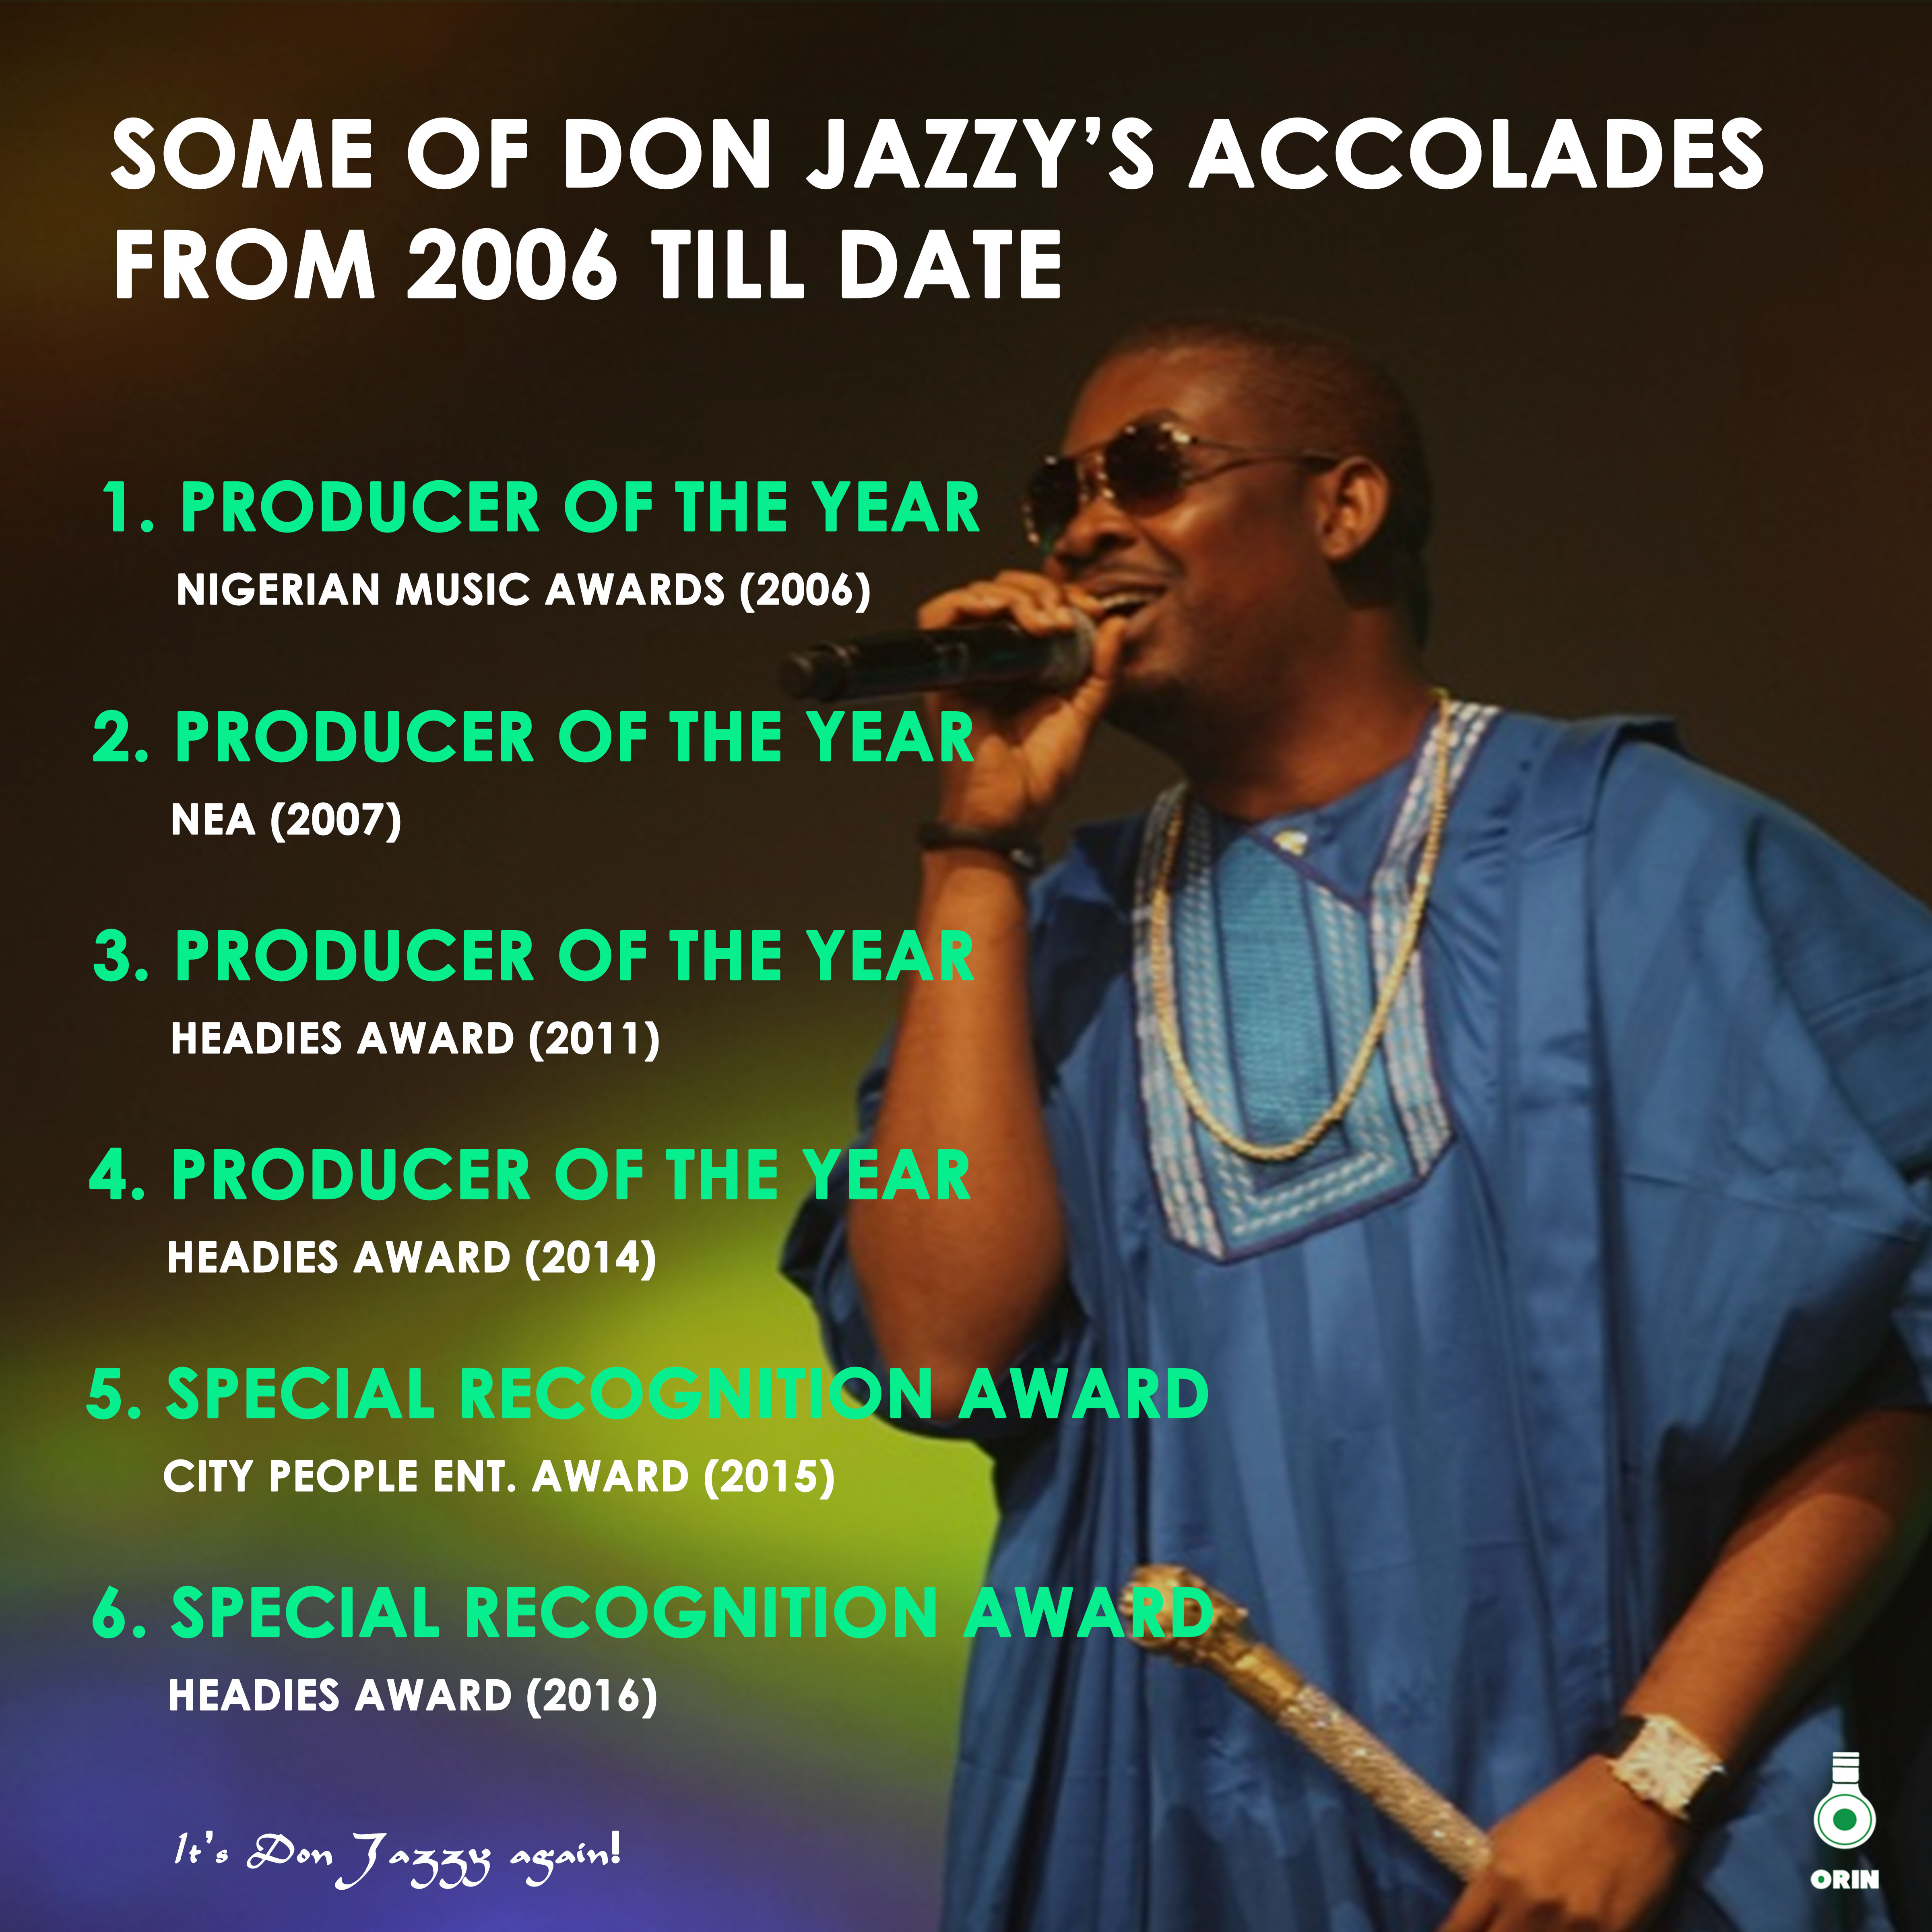 Some Of Don Jazzy's Accolades From 2006 Till Date | #HBDDonJazzy